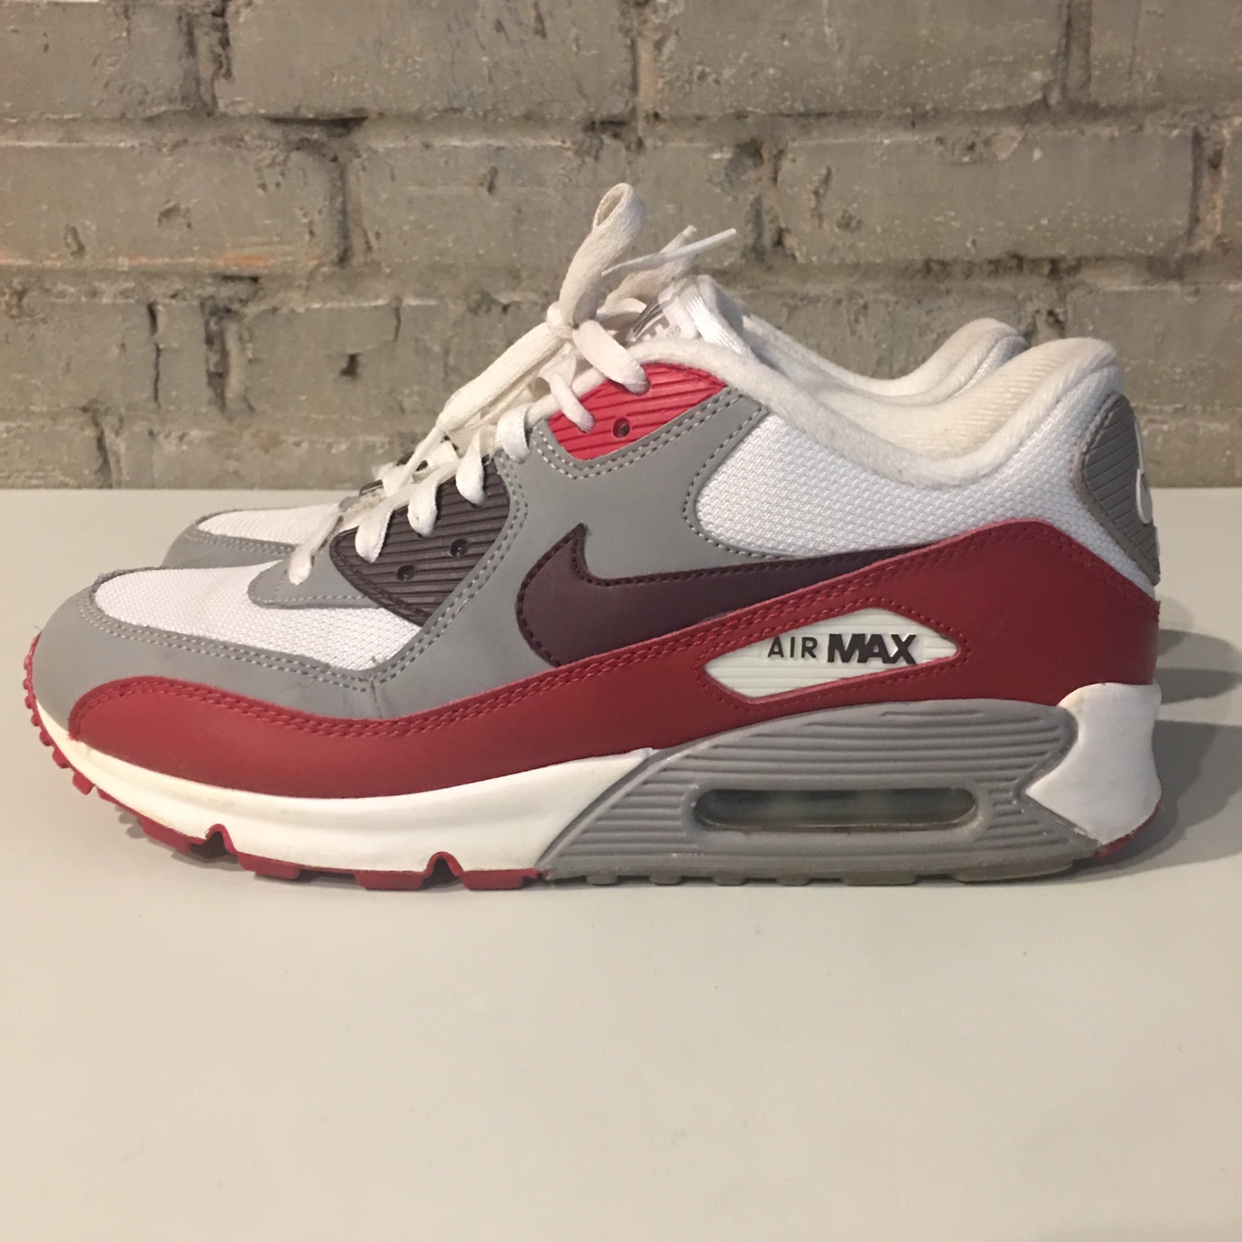 Colector Deambular Frotar  Nike Air Max 90 Shoes 2011 Release 🔥 Condition:... - Depop